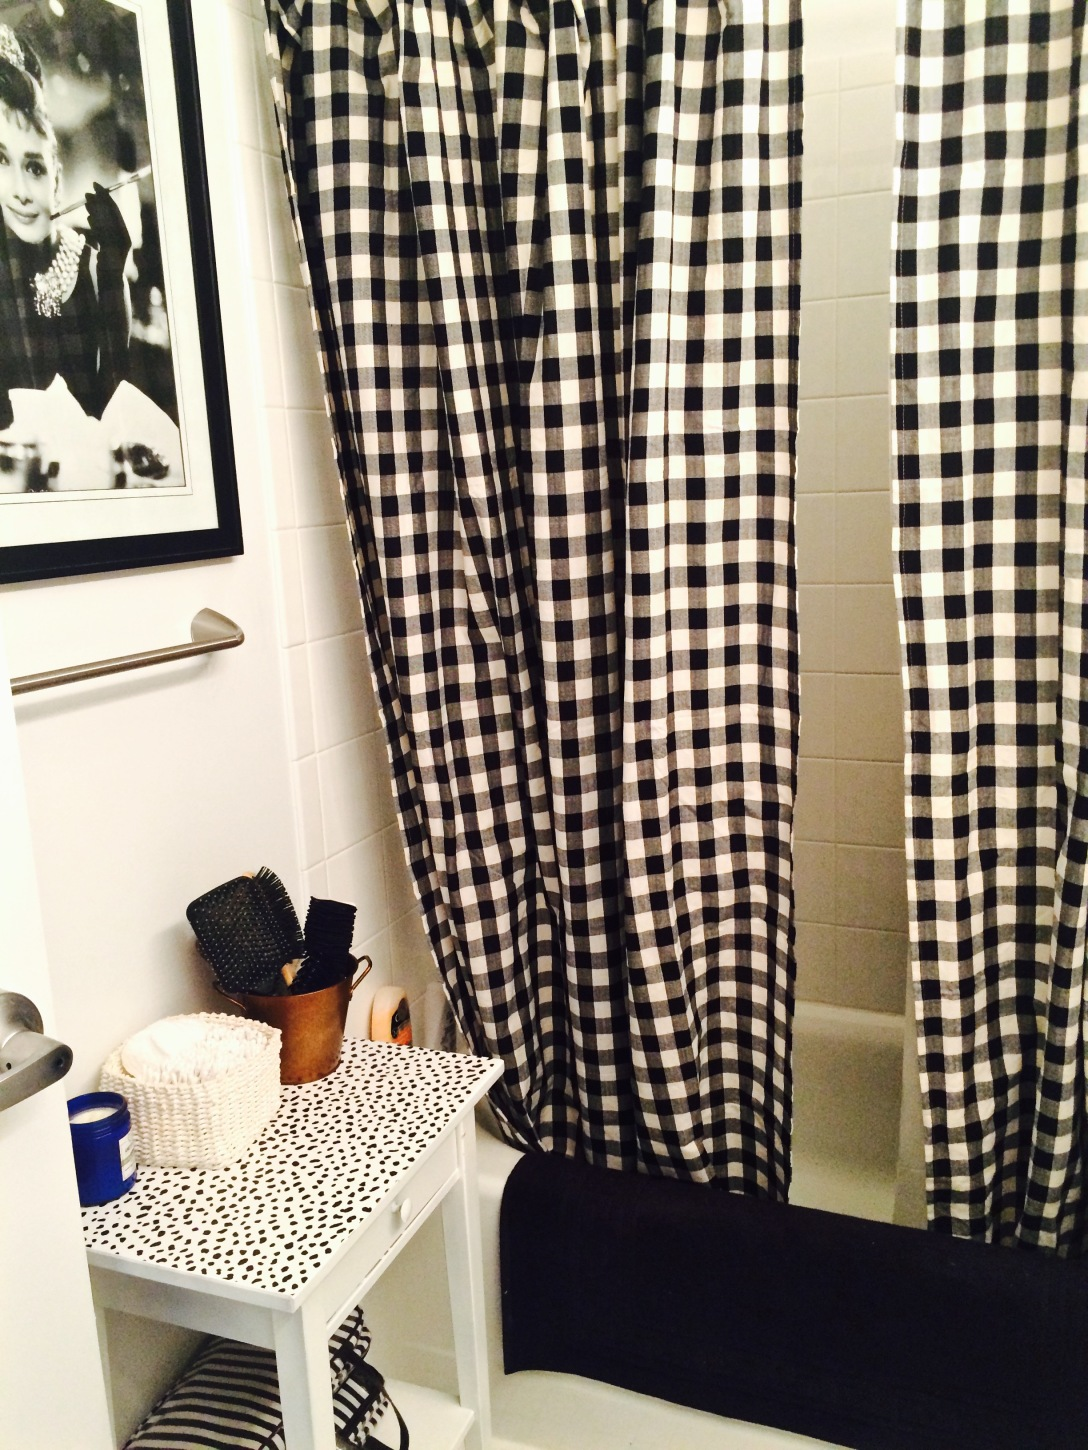 Because two shower curtains are ALWAYS better than one.